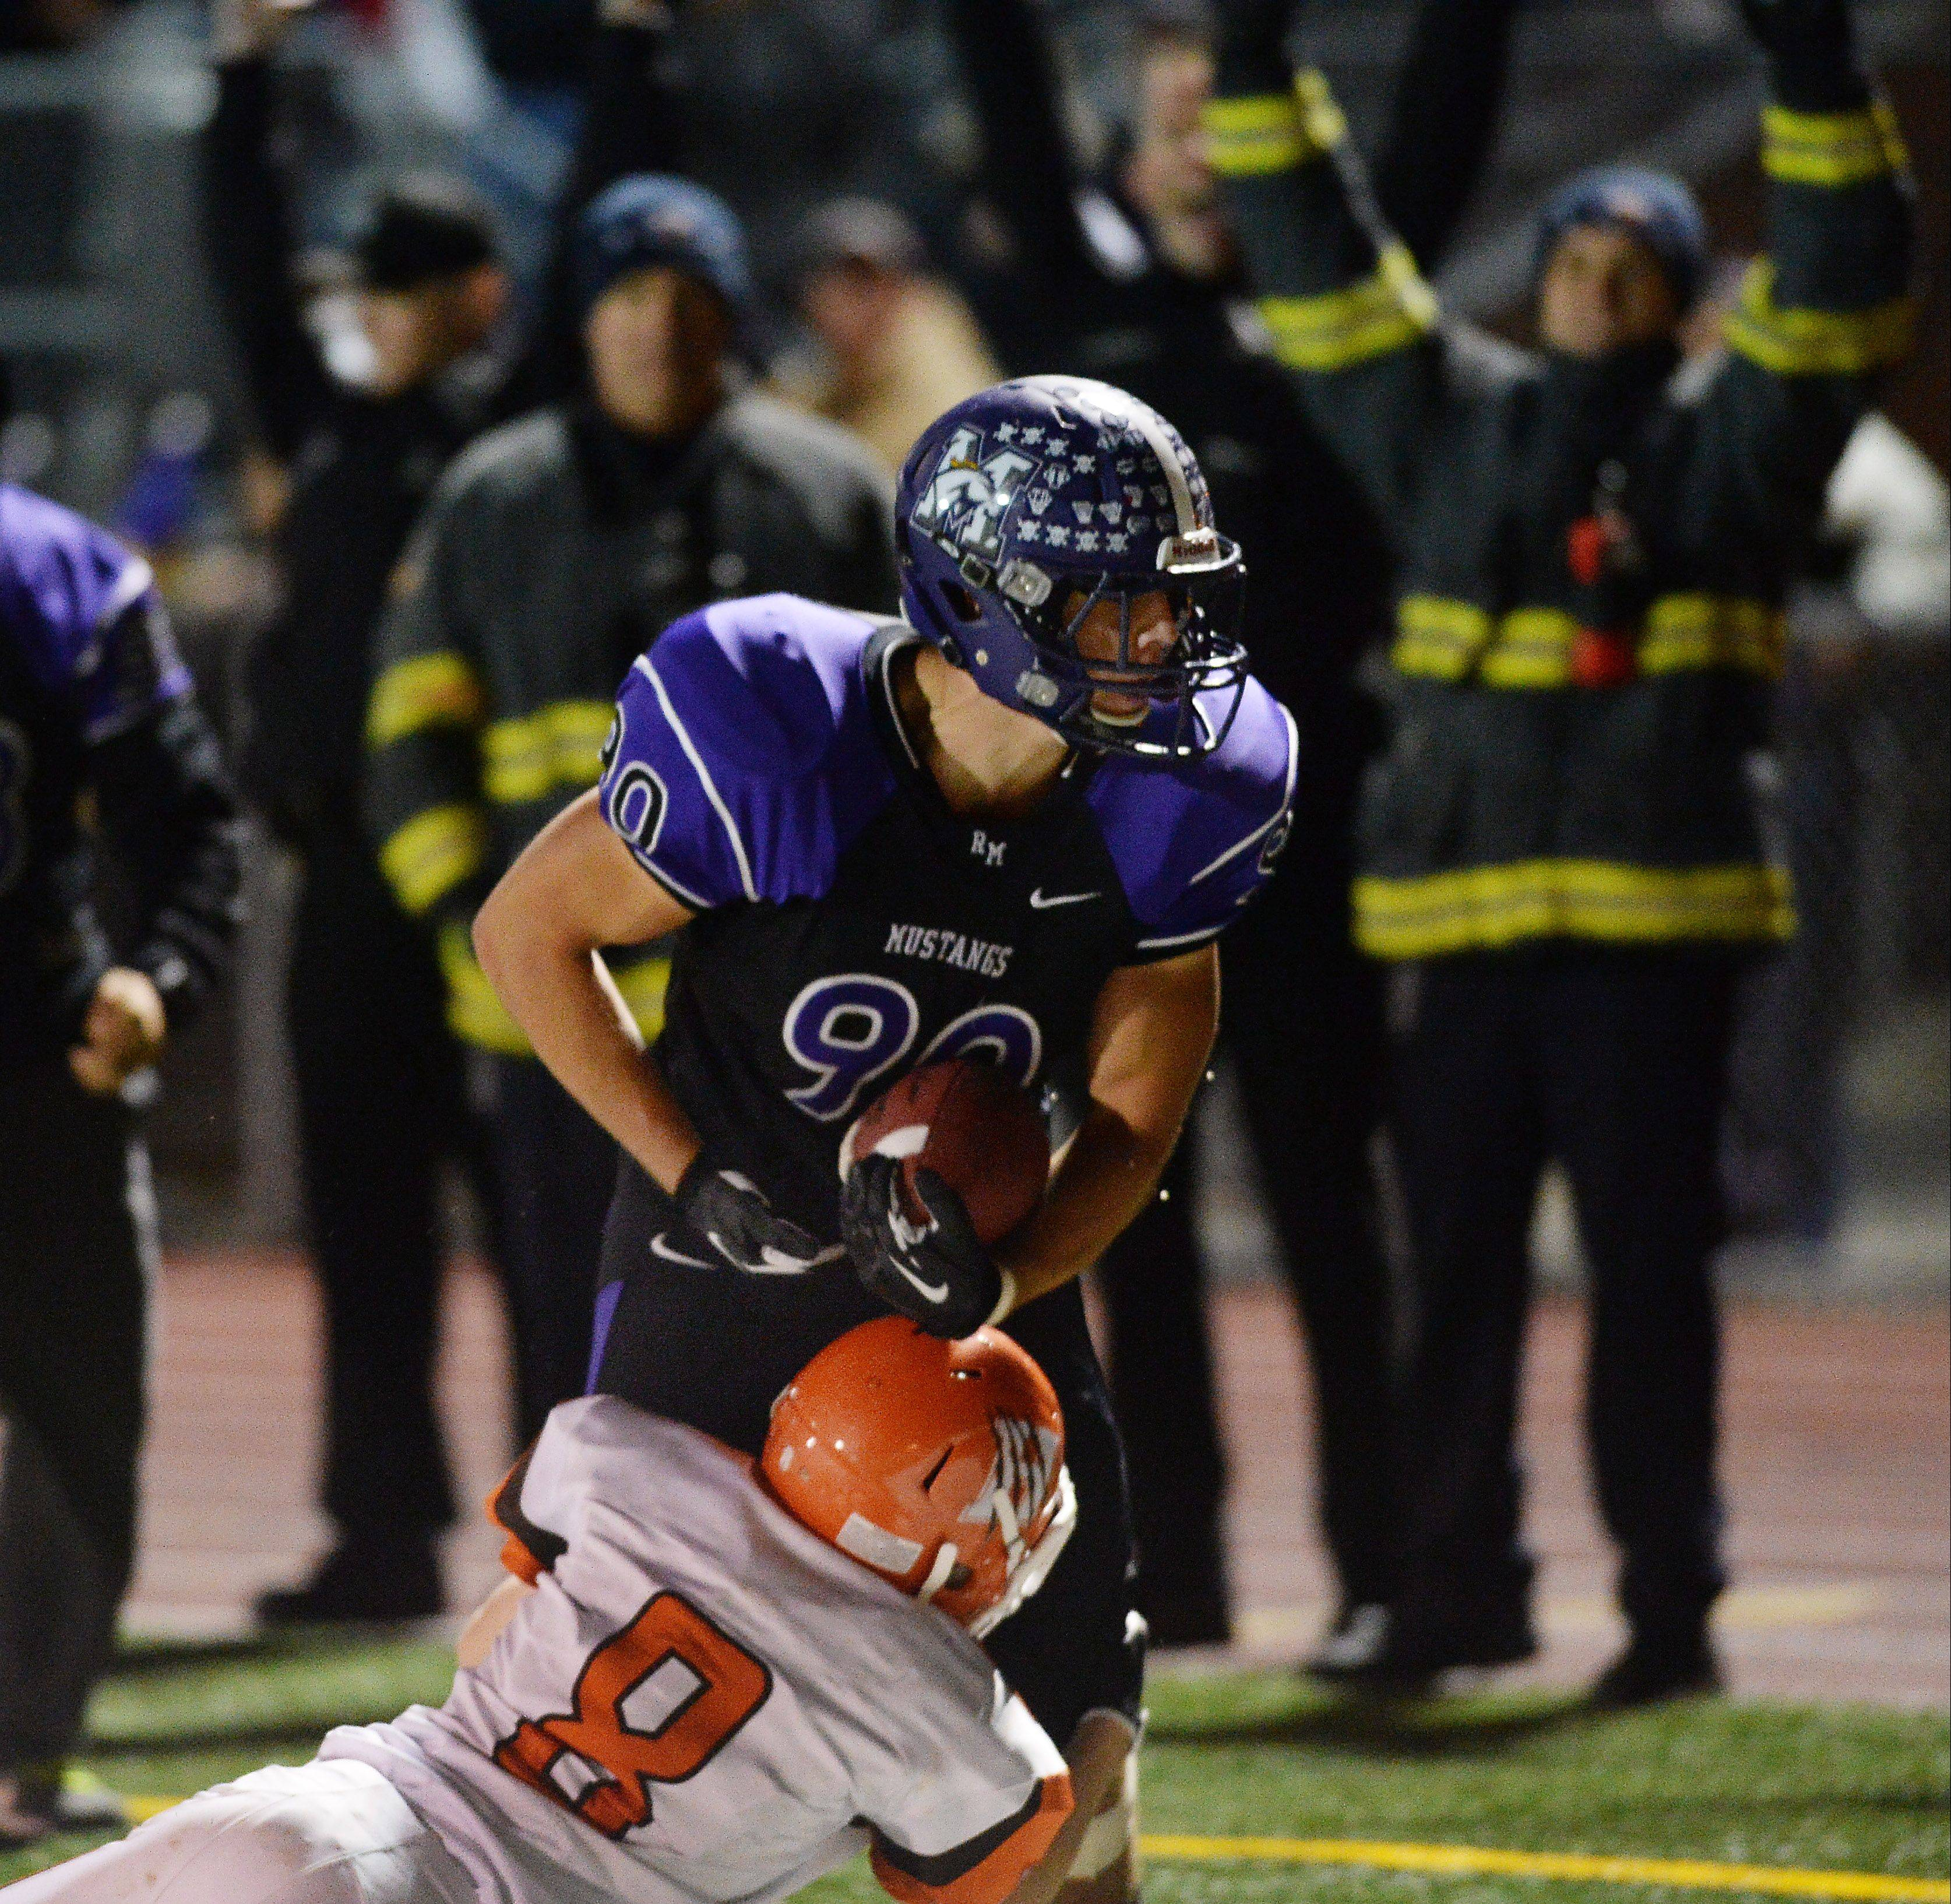 Dream finish for Rolling Meadows